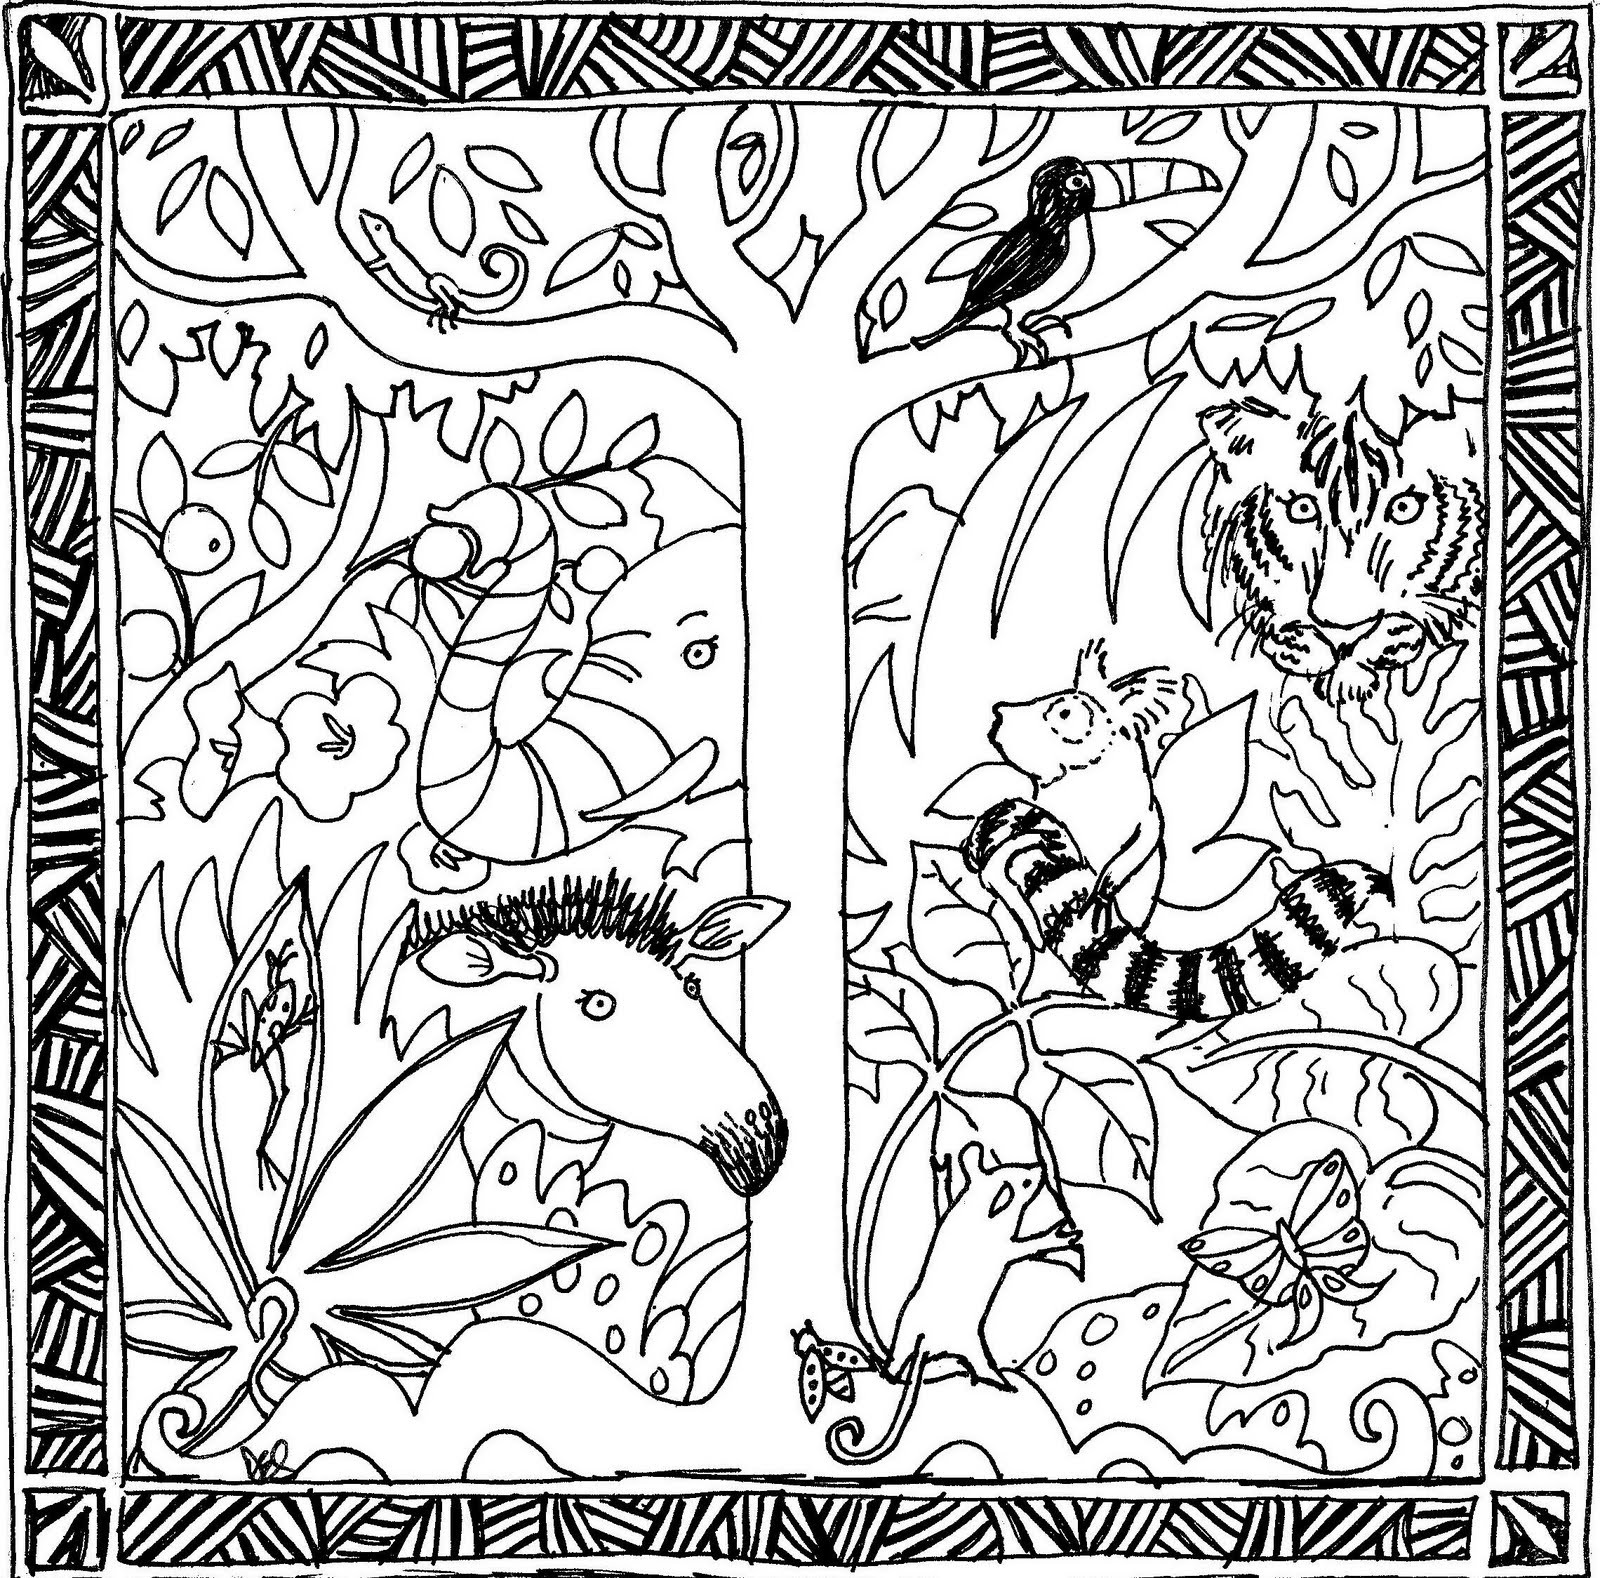 1600x1578 Rainforest Coloring Pages To Print Copy Free Printable Rainforest